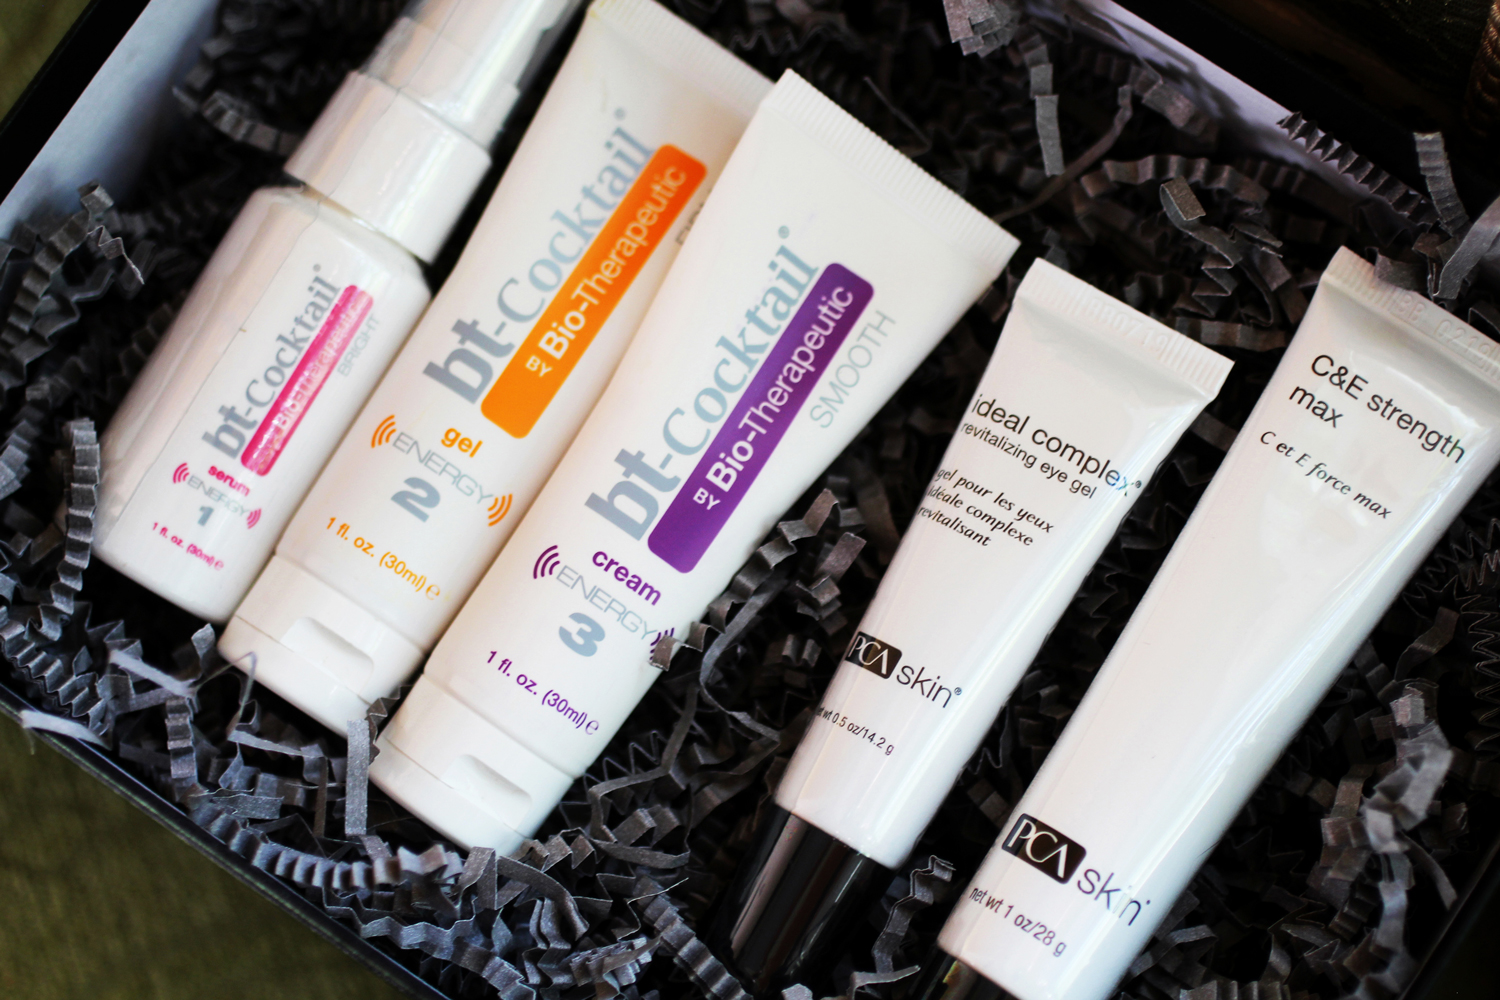 Current-Web-Image_Skincare-Page_Products-2.jpg